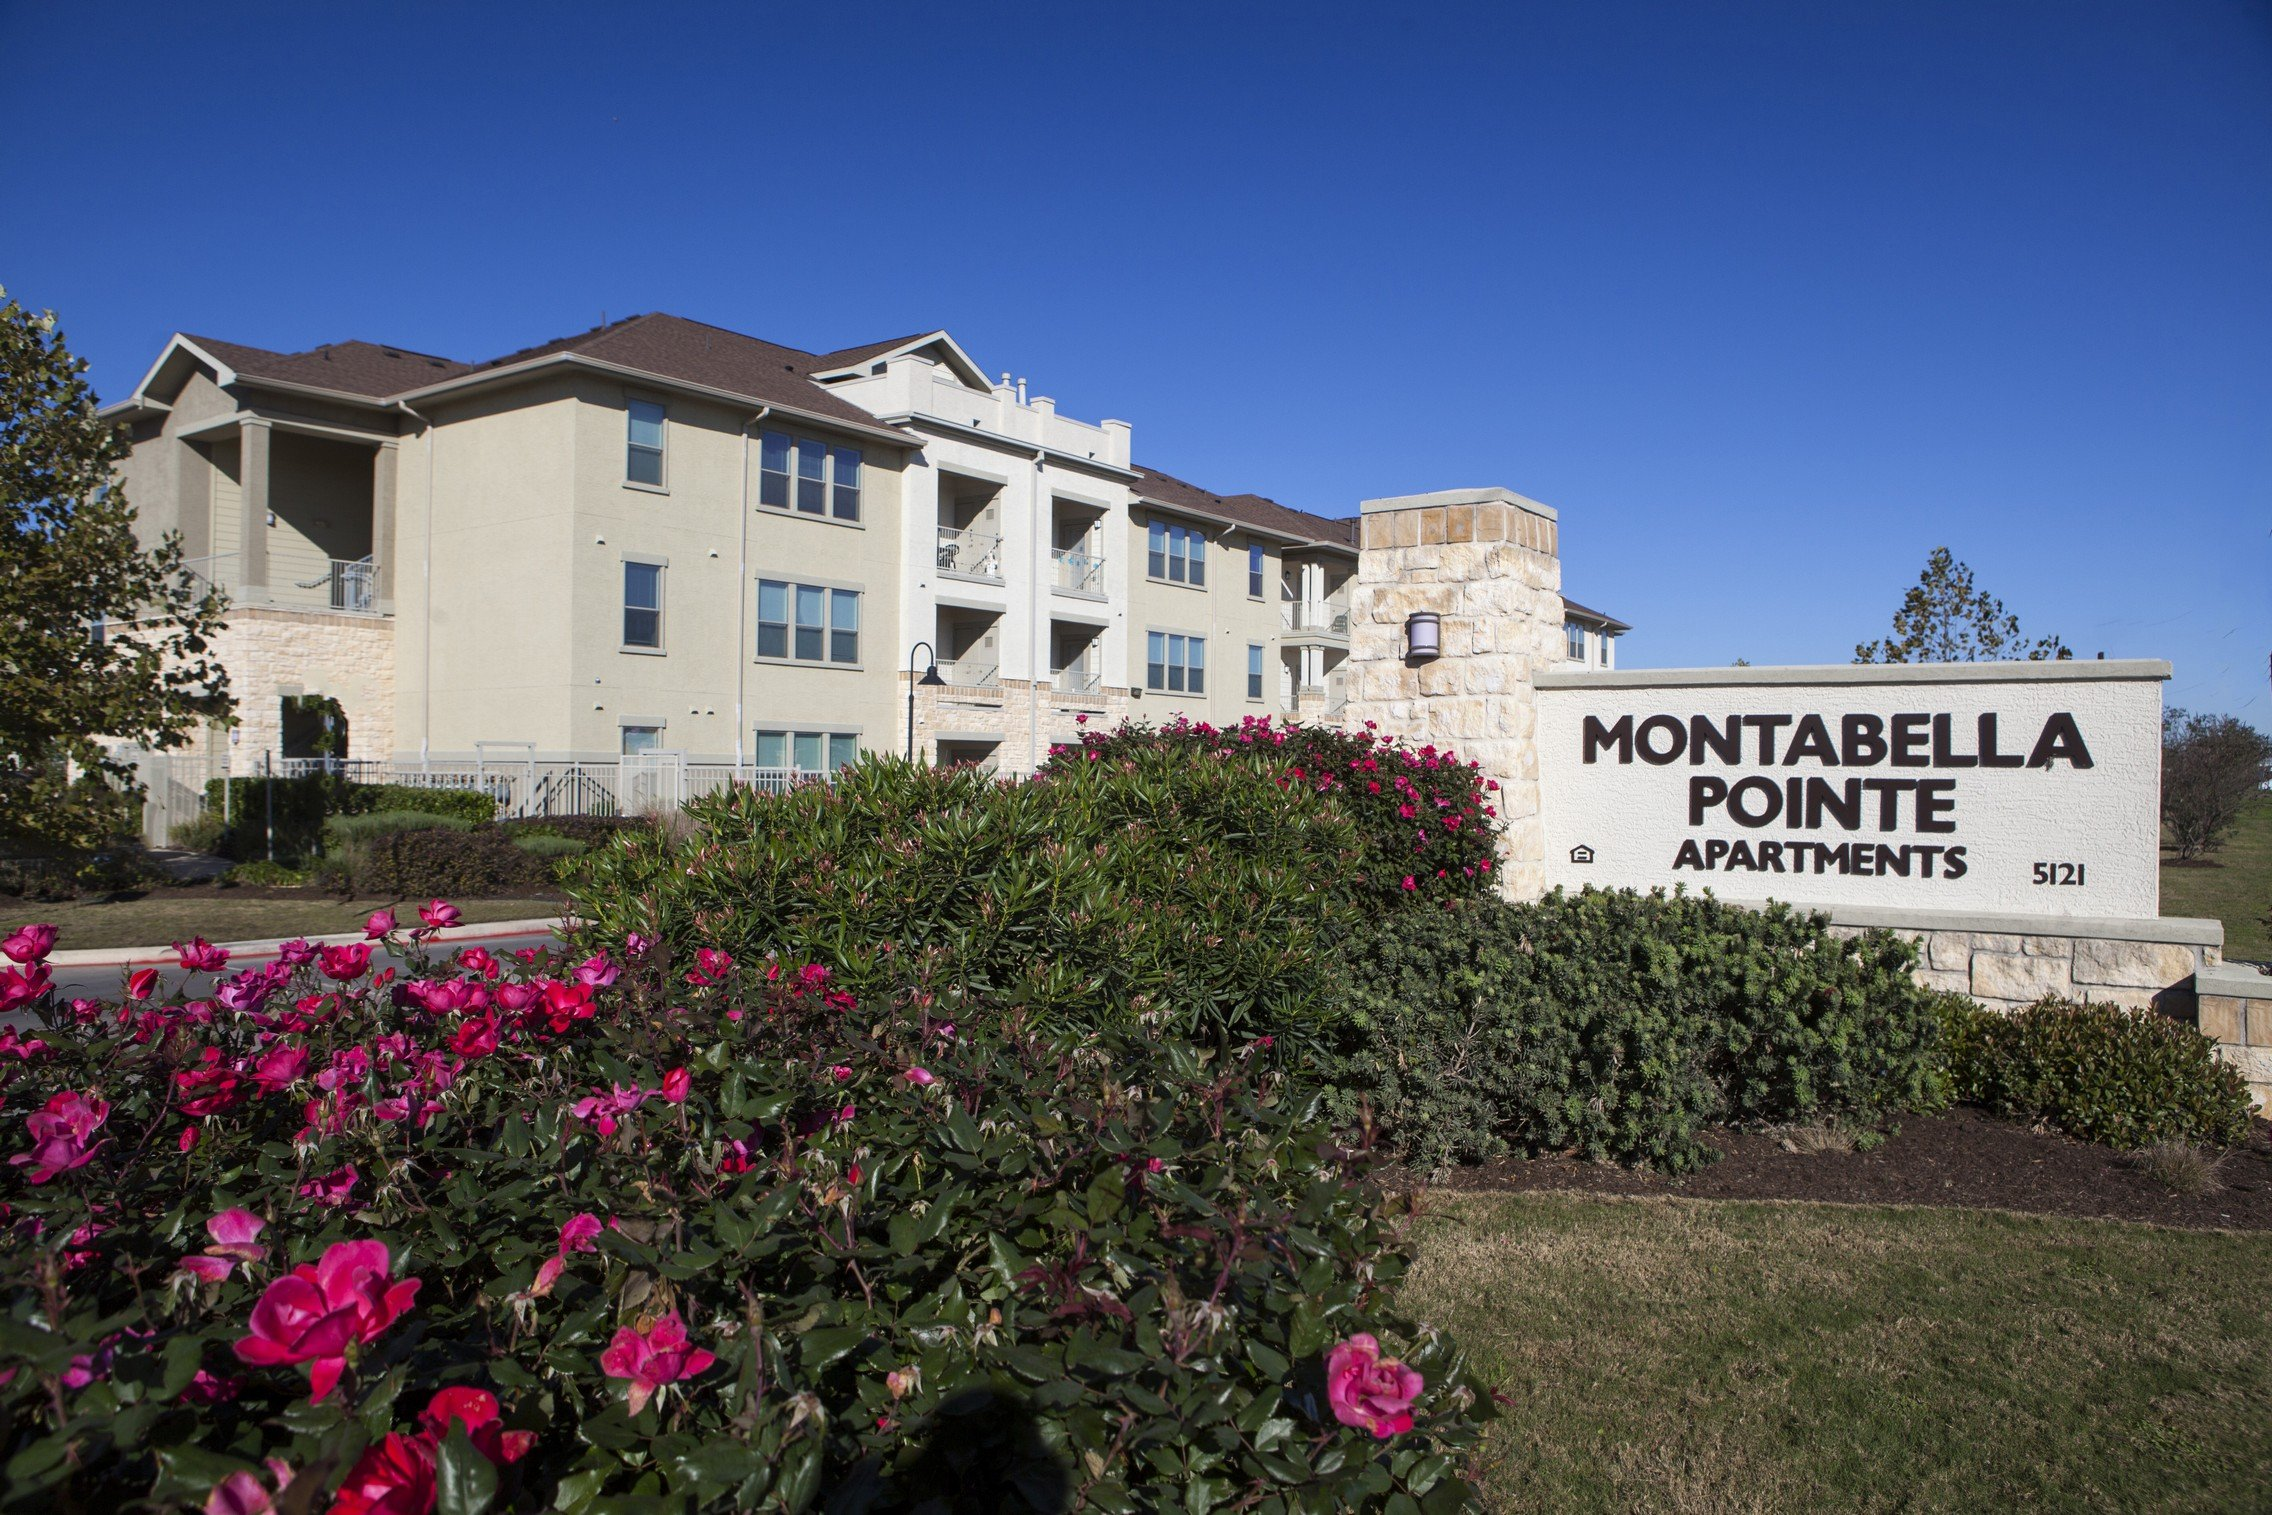 Montabella Pointe Apartments